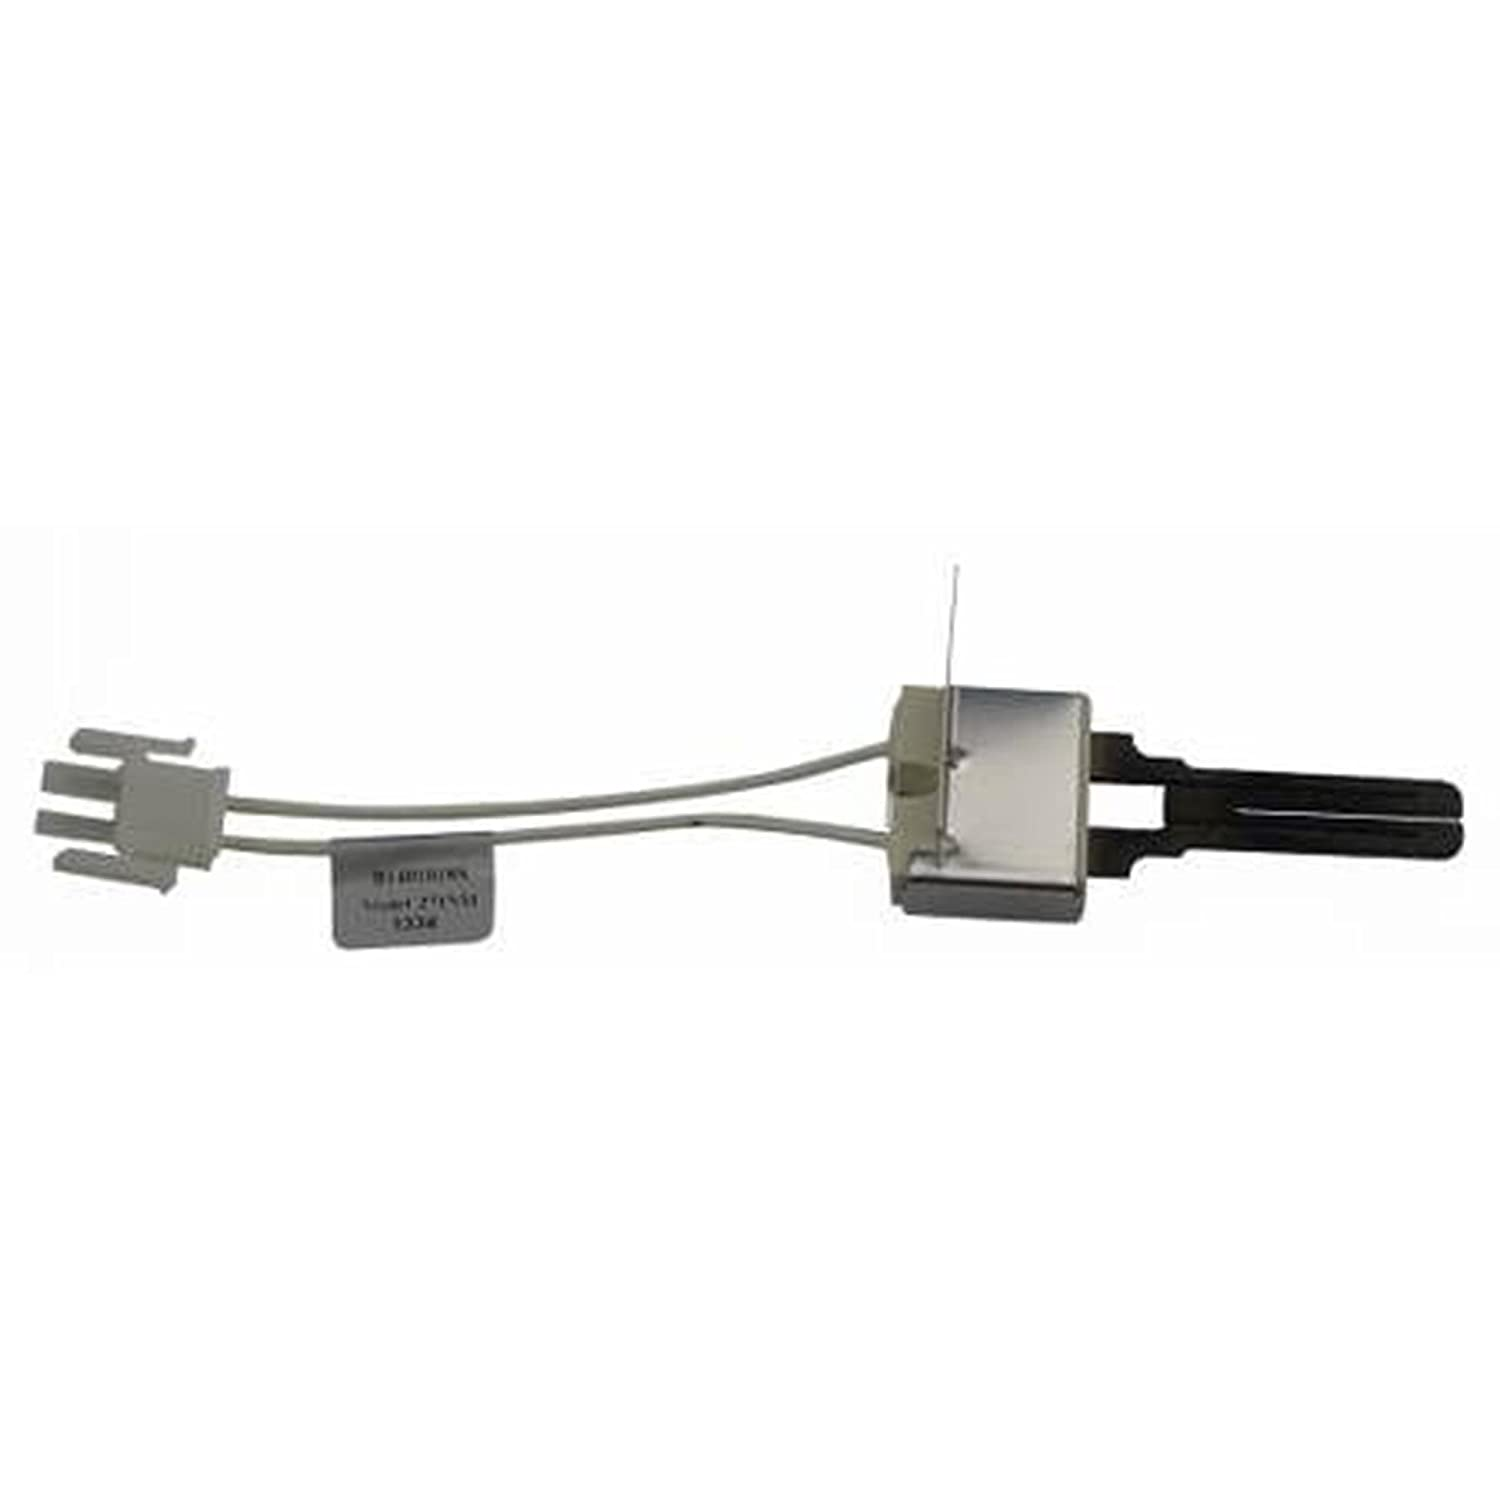 Goodman Furnace Hot Surface Igniter Model: B14010-18S - HVAC - Air Conditioning Refrigeration